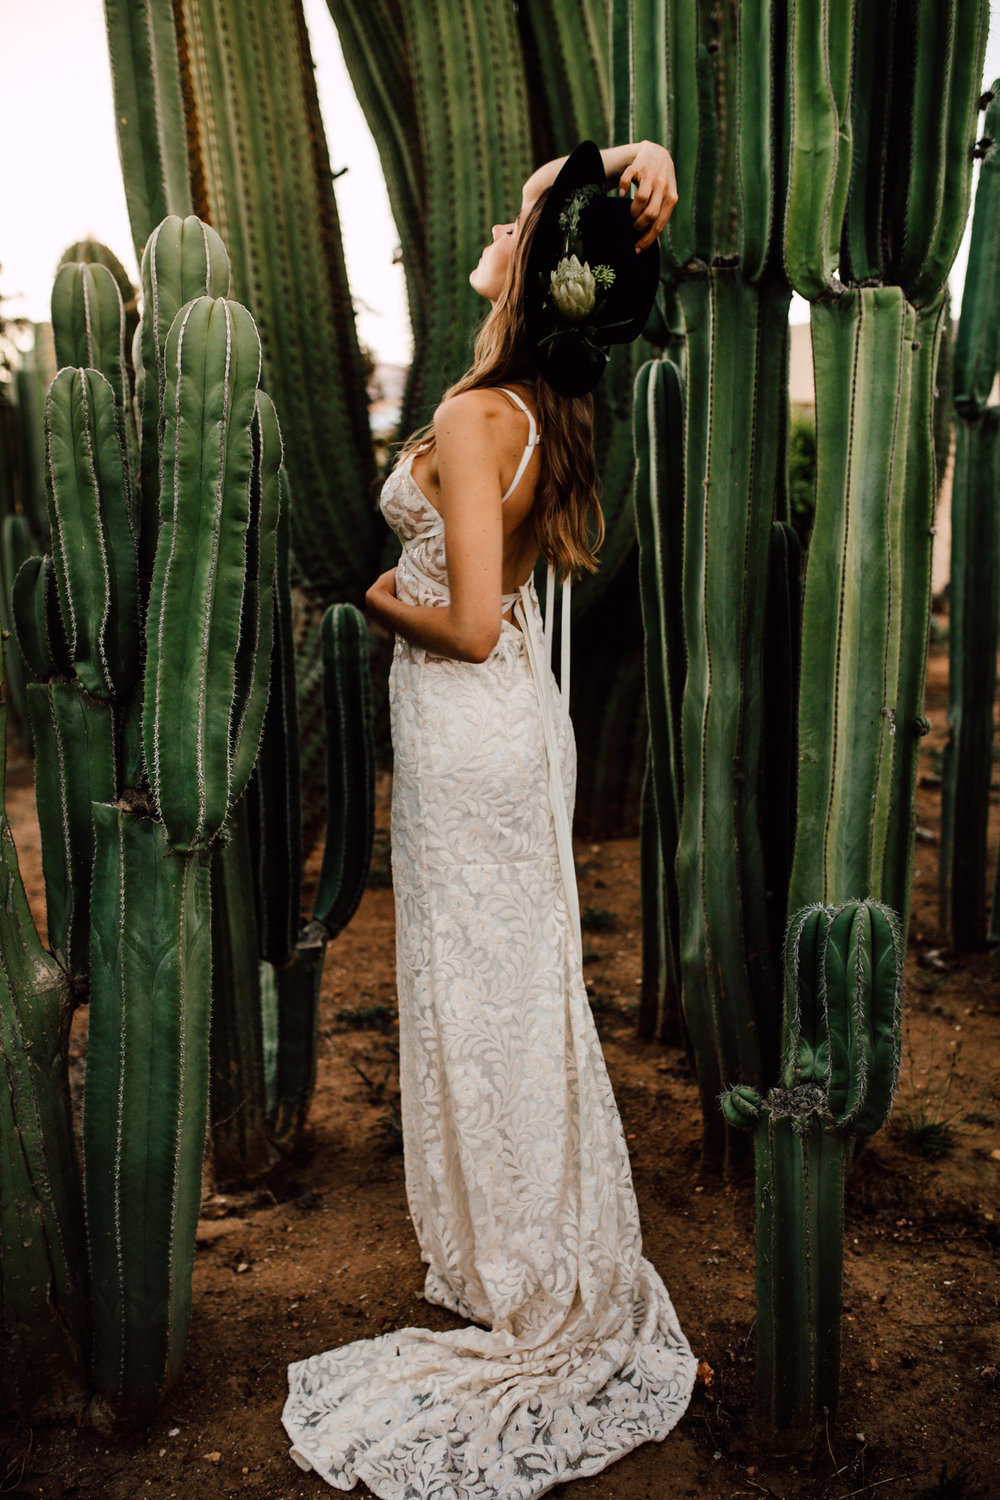 Cape-Town-Pia-Anna-Christian-Wedding-Photography-South-Africa-Bride-Cactus-18.jpg